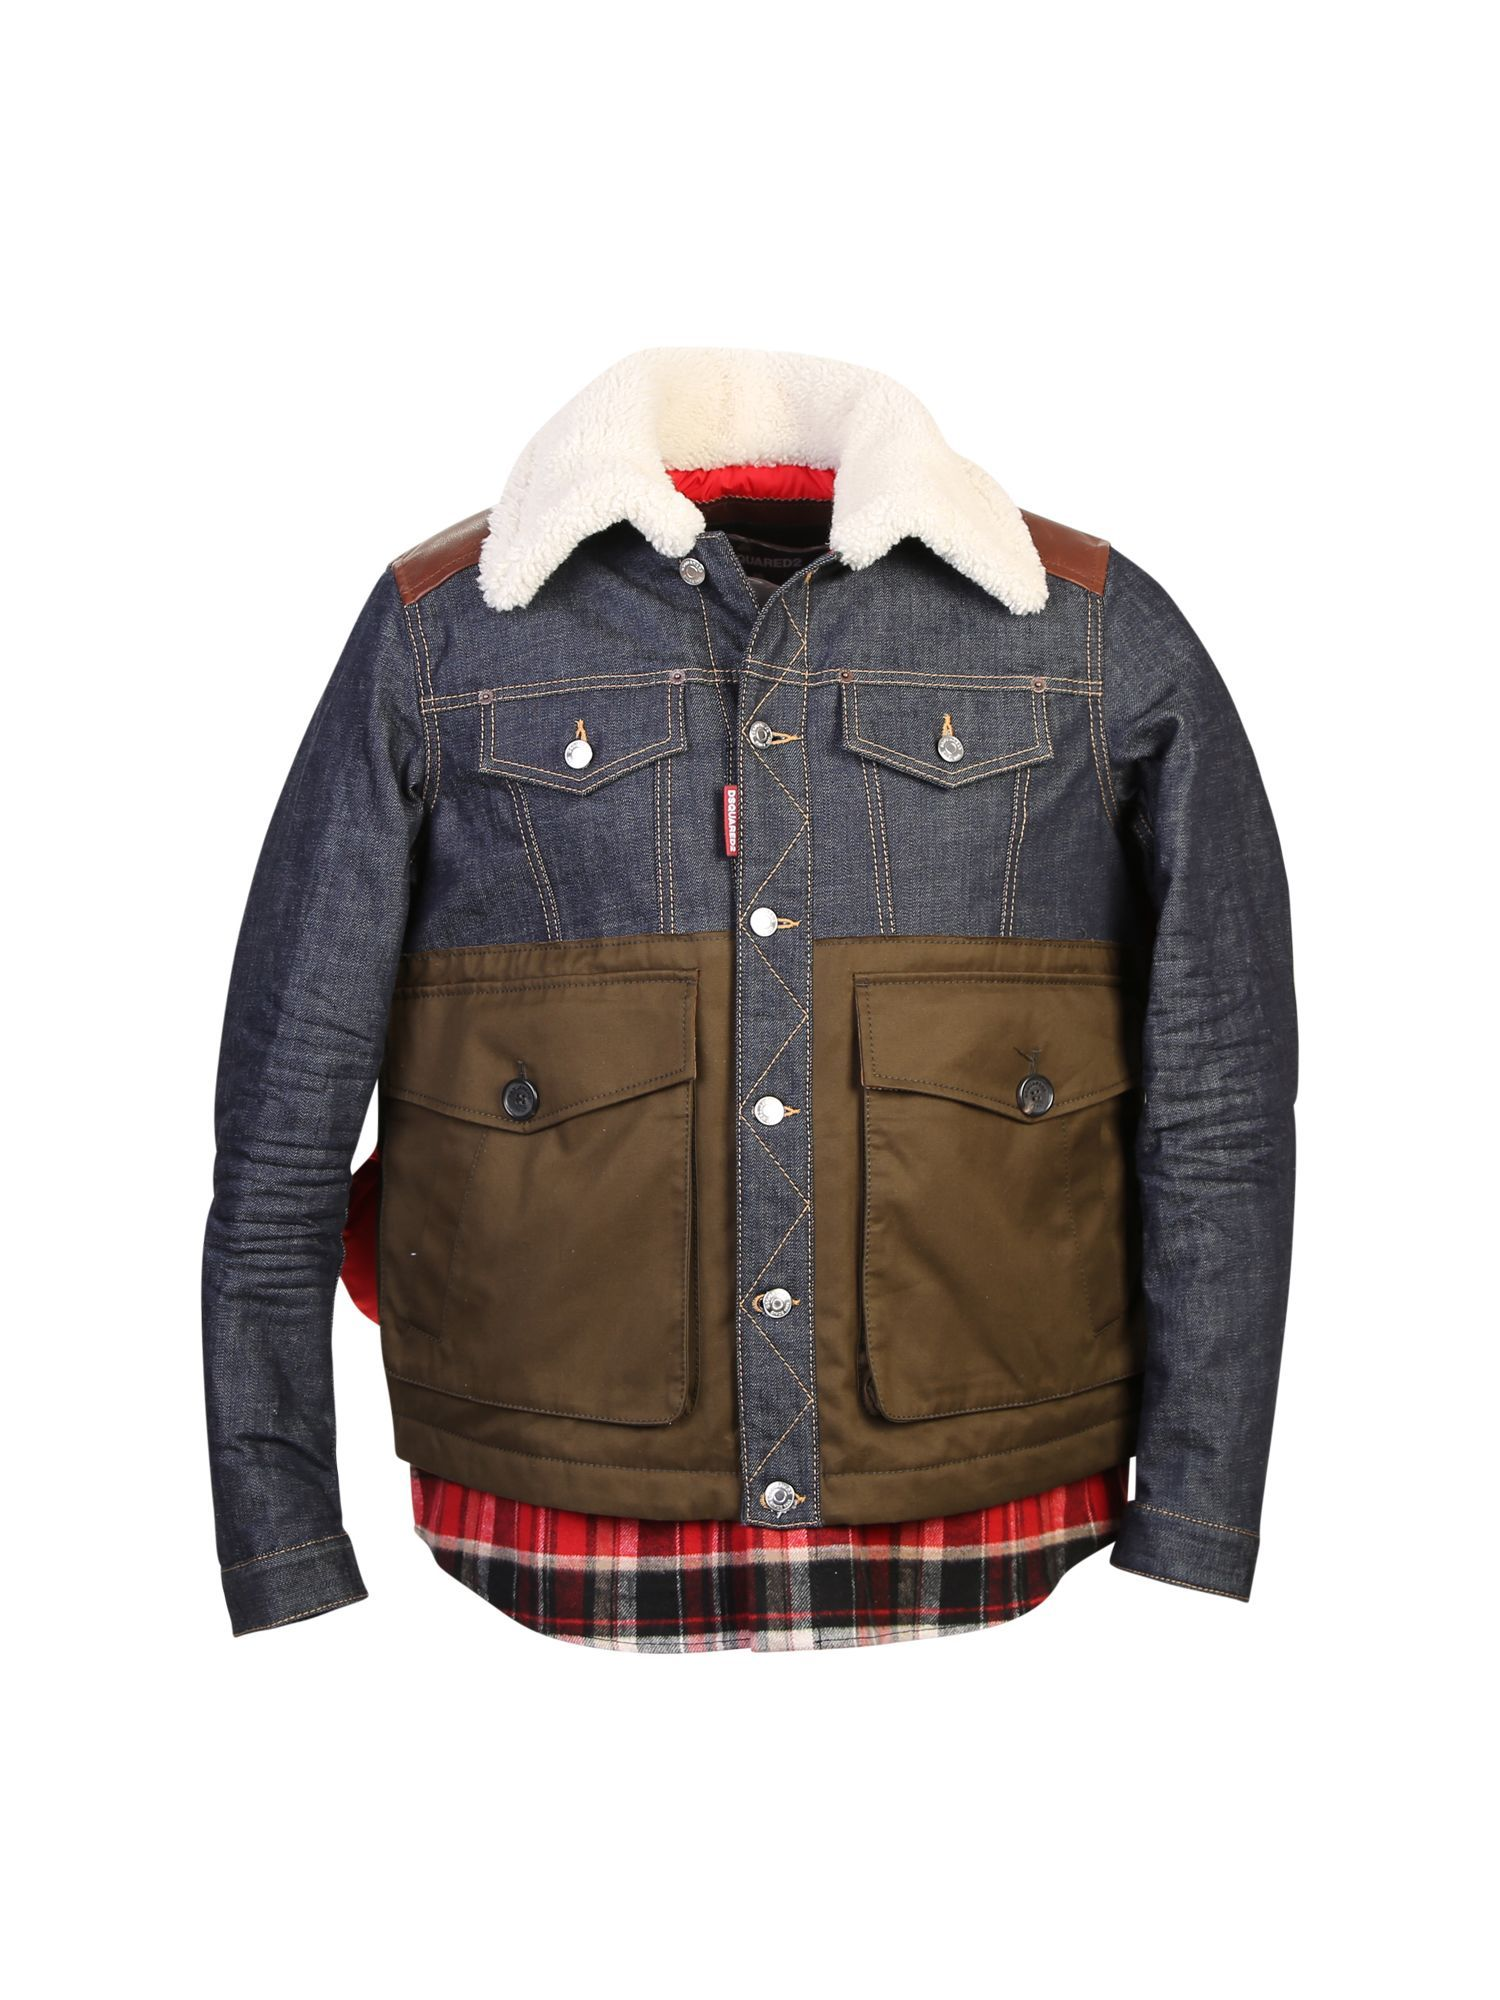 padded denim gilet - Brown Dsquared2 Buy Cheap Find Great Visa Payment Online Nicekicks Sale Online 6gQzvrtg6